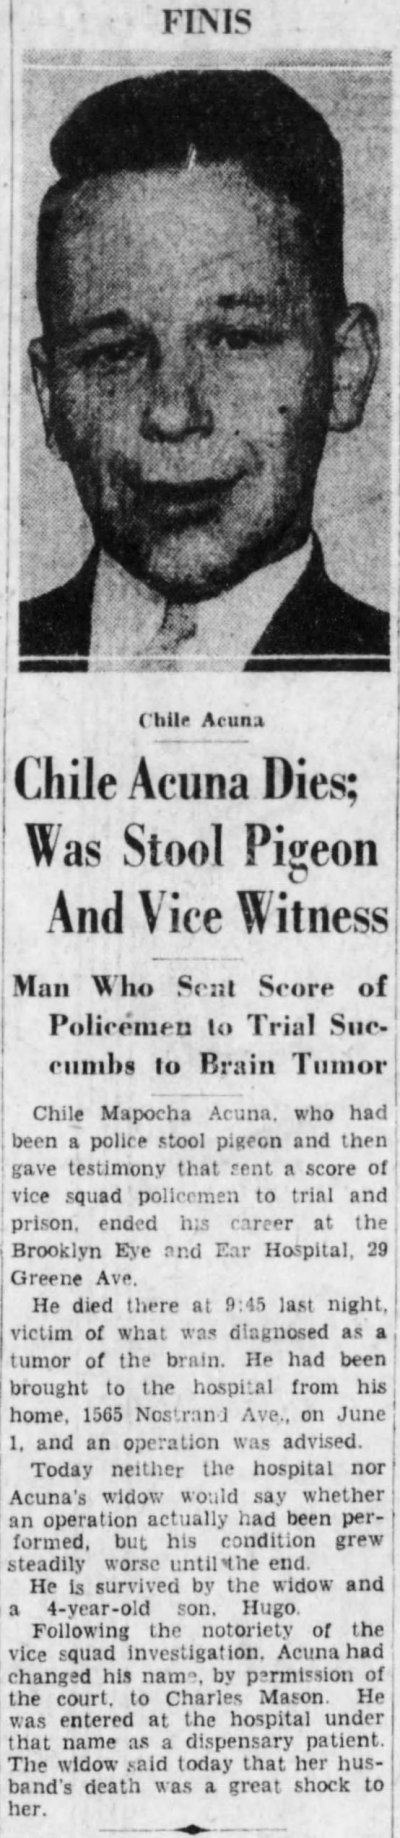 Chile Acuna obituary 23 June 1932